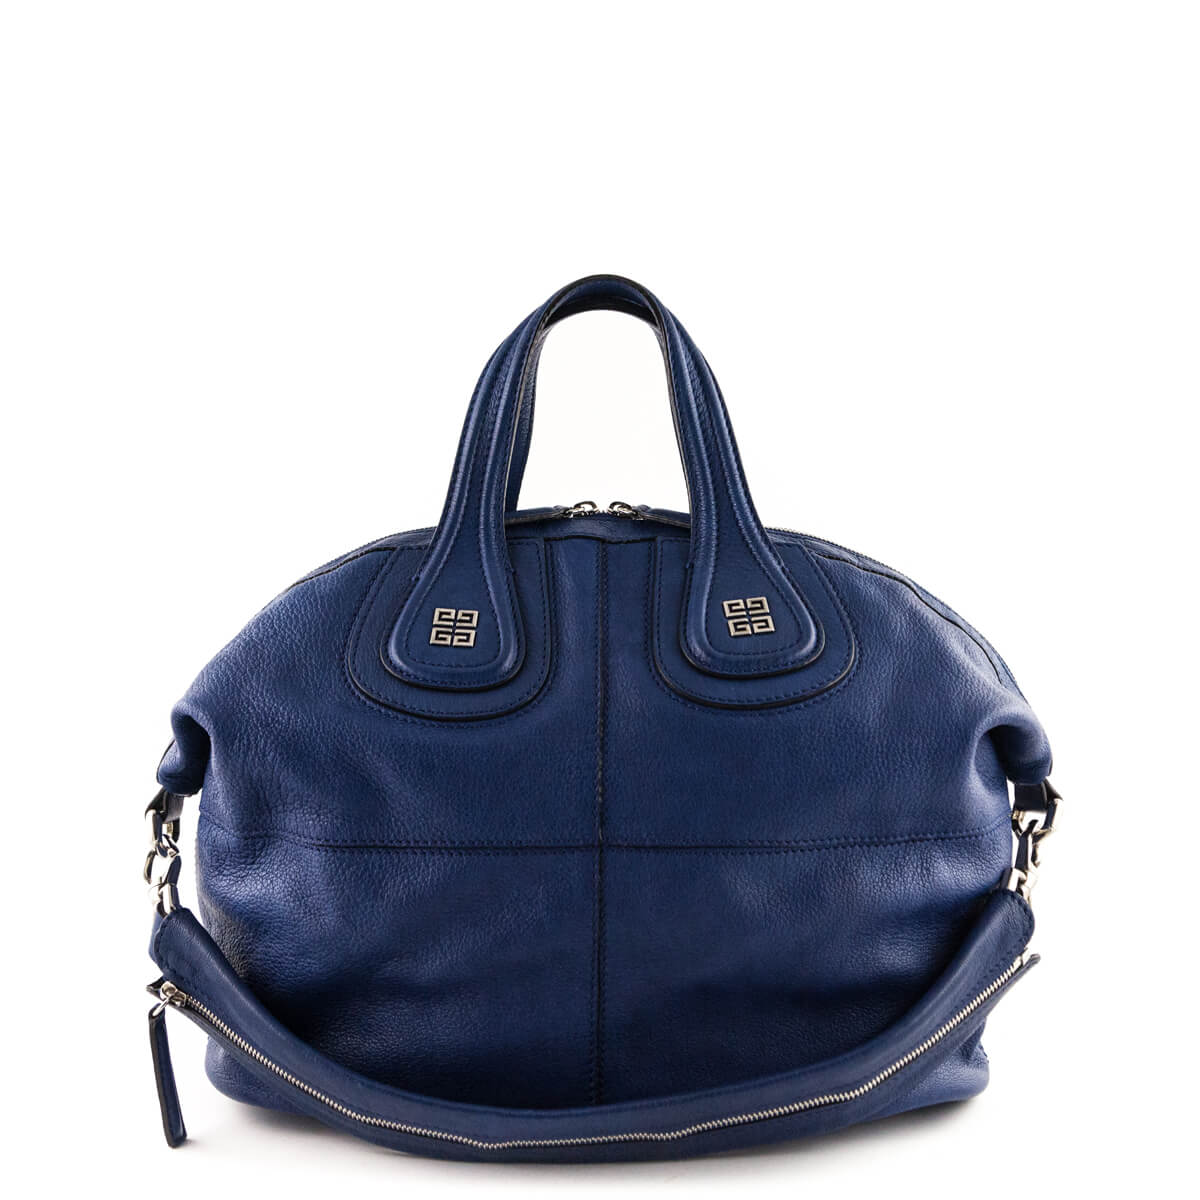 cc5547ada881 Givenchy Blue Goatskin Medium Nightingale - LOVE that BAG - Preowned  Authentic Designer Handbags ...